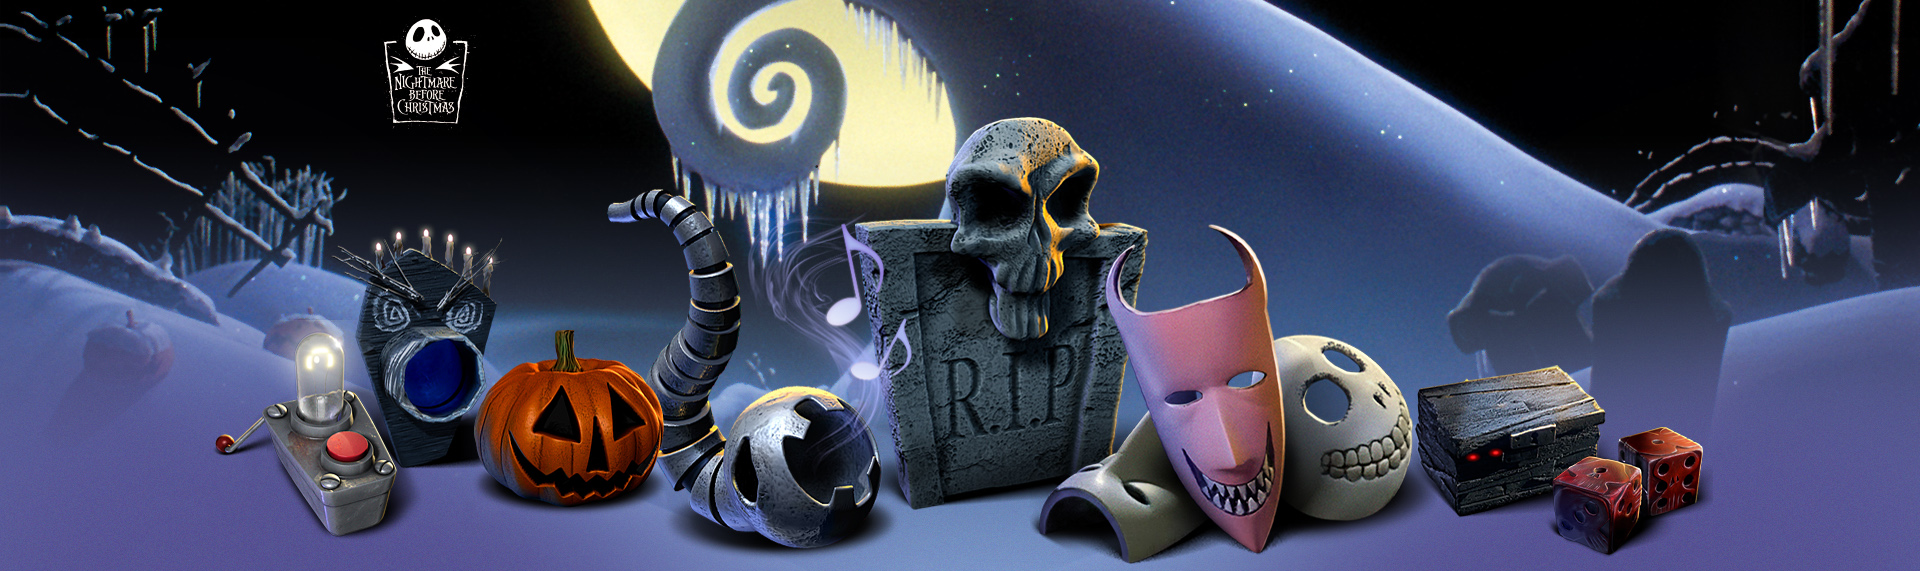 Disney's The Nightmare Before Christmas Sony PlayStation XMB Icons  Client: The Walt Disney Company  This Tim Burton-approved PlayStation theme was created by The Skins Factory for Disney based on the cult favorite film - Tim Burton's The Nightmare Before Christmas. The Skins Factory created a spookiy set of over 50 ghostly, holographic XrossMediaBar (XMB) navigation icons, super creepy 3D main navigation icons, custom cursors and more. For Sony PlayStation 3 & PlayStation Portable. All images Disney. All Rights Reserved